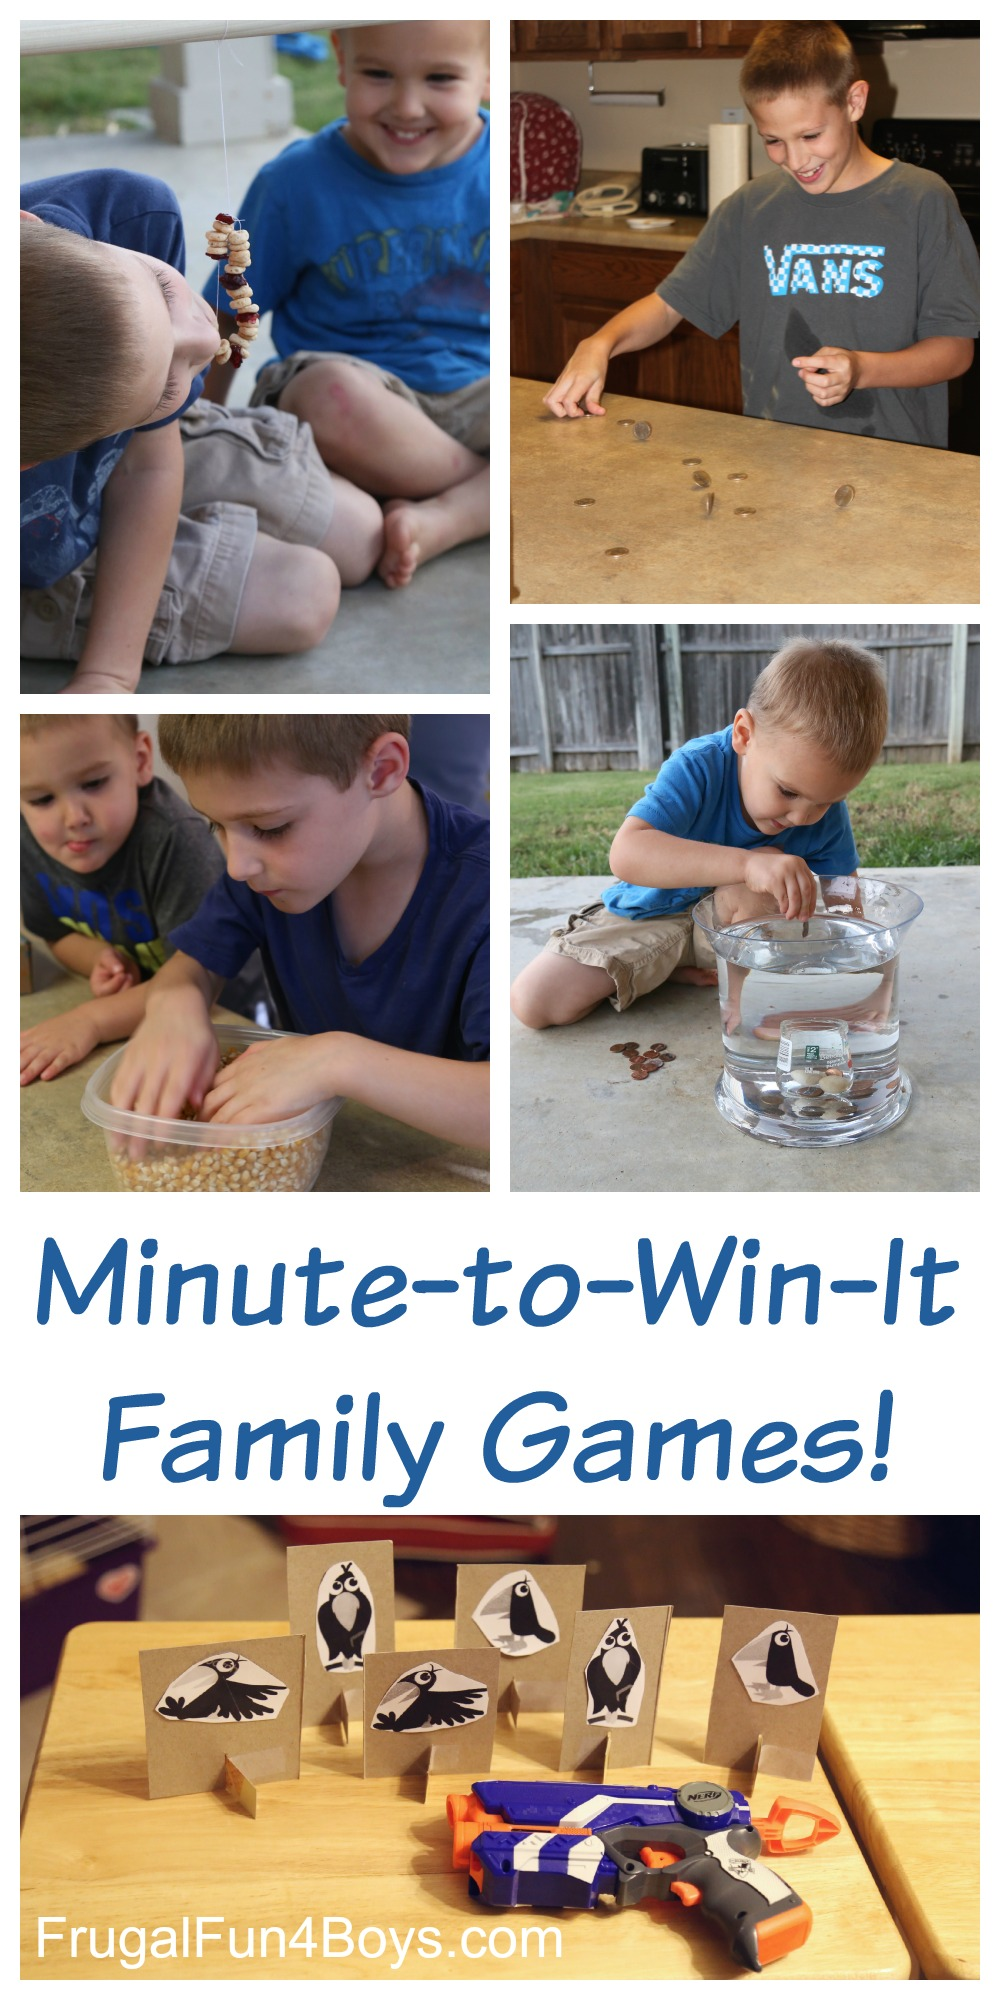 Minute-to-Win-It Family Game Challenges - Game Night Ideas that the Whole Family Will Enjoy